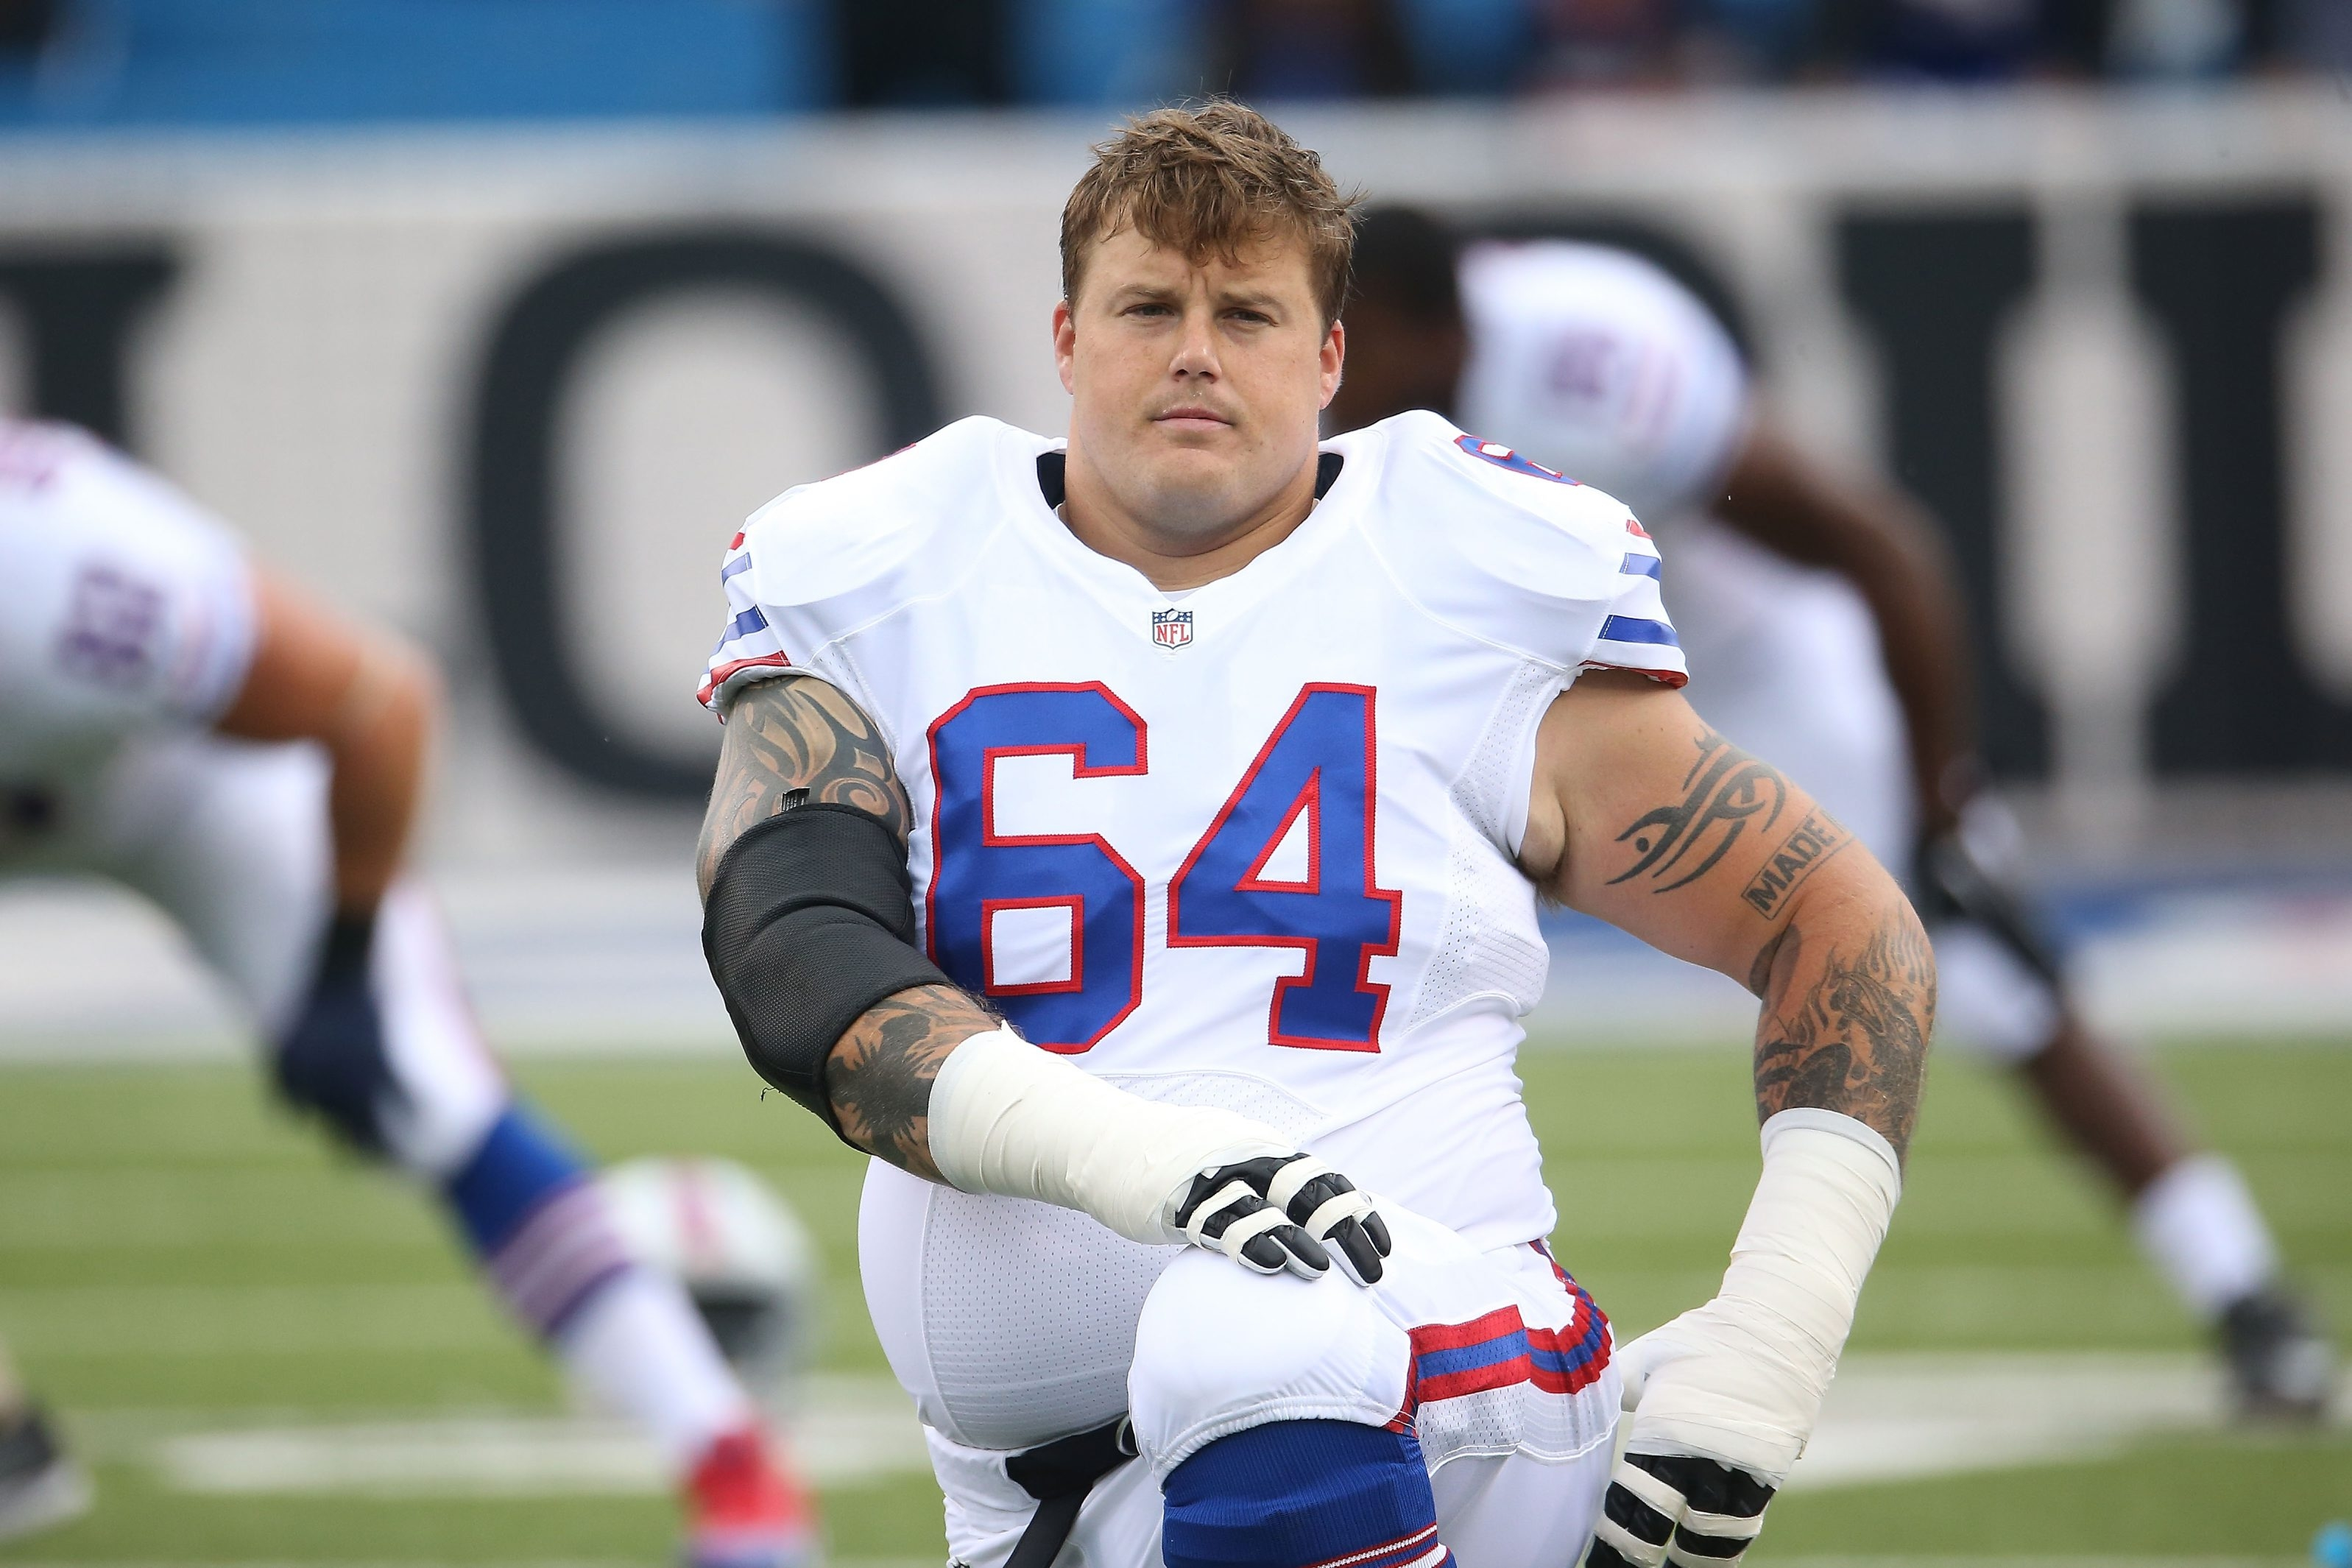 Richie Incognito has become a valued member of the team.